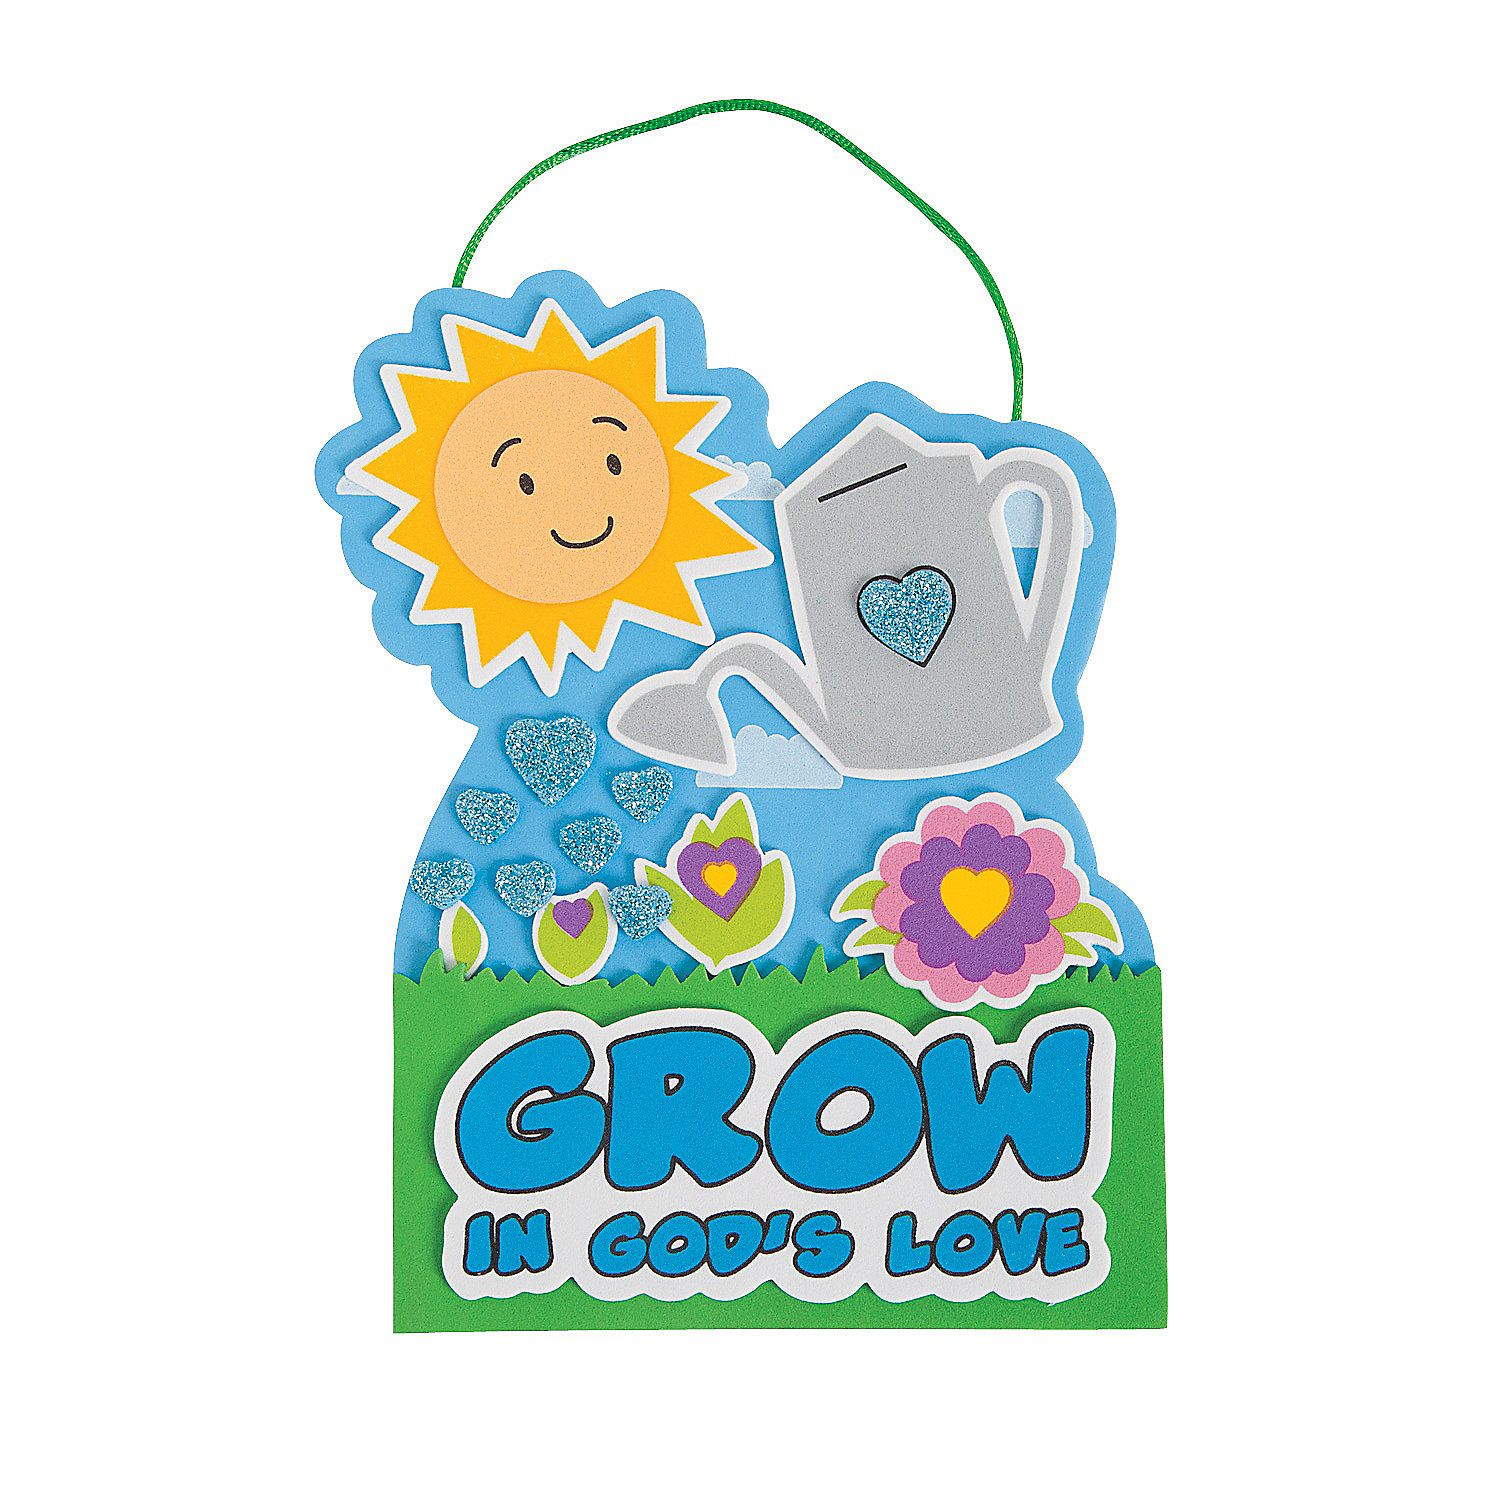 Oriental trading christian crafts - Grow In God S Love Sign Craft Kit Orientaltrading Com